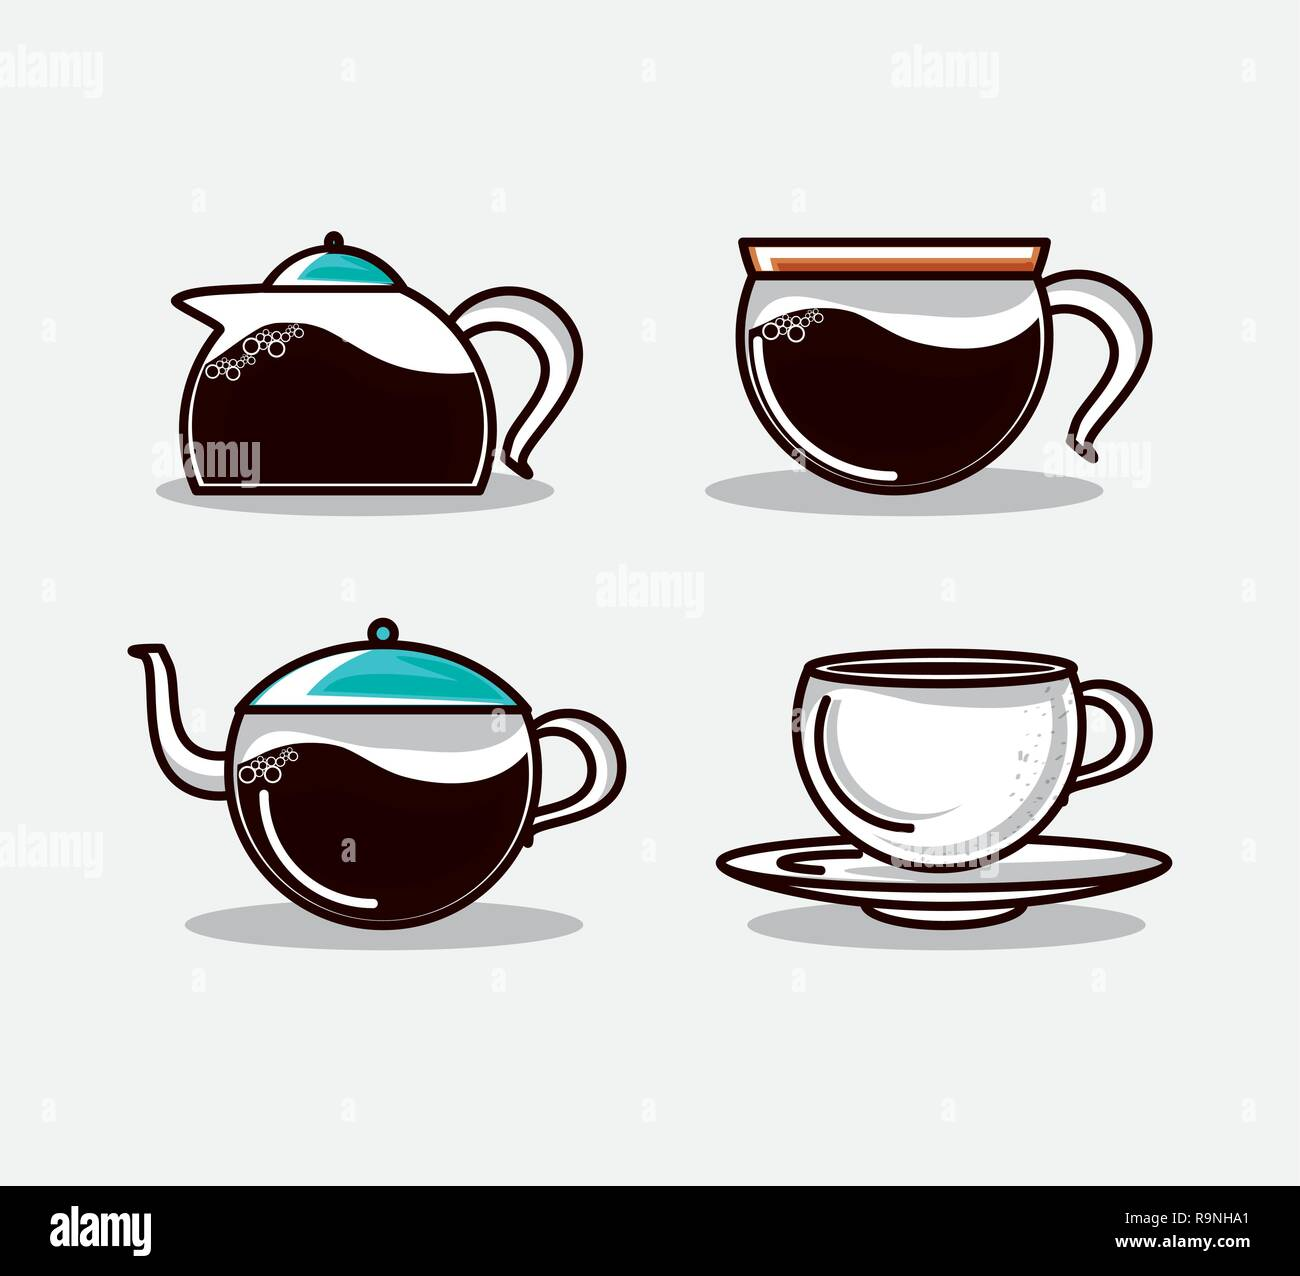 set teapots kitchen and cups vector illustration design - Stock Image